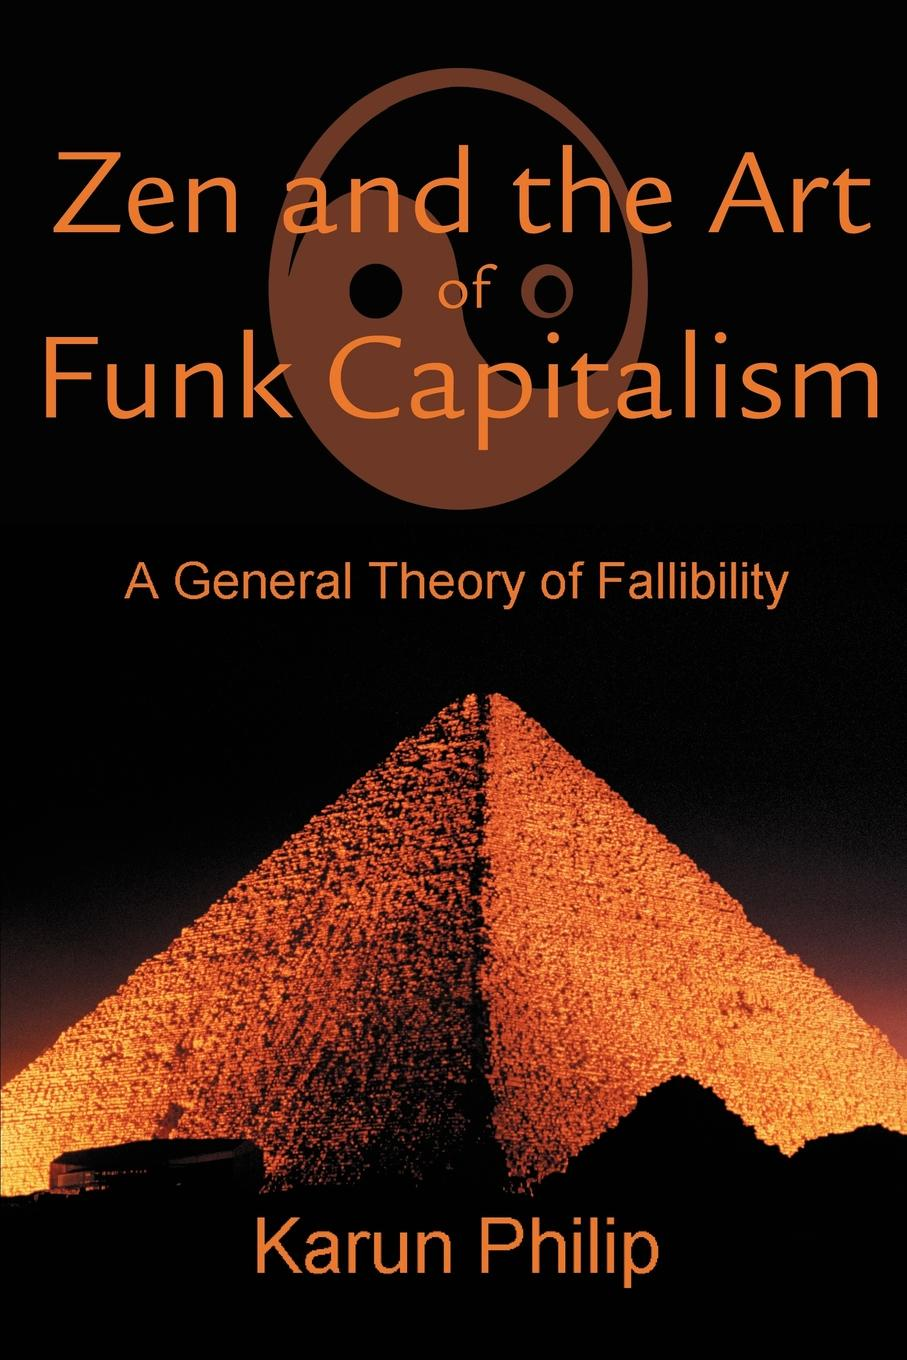 Karun Philip Zen and the Art of Funk Capitalism. A General Theory Fallibility